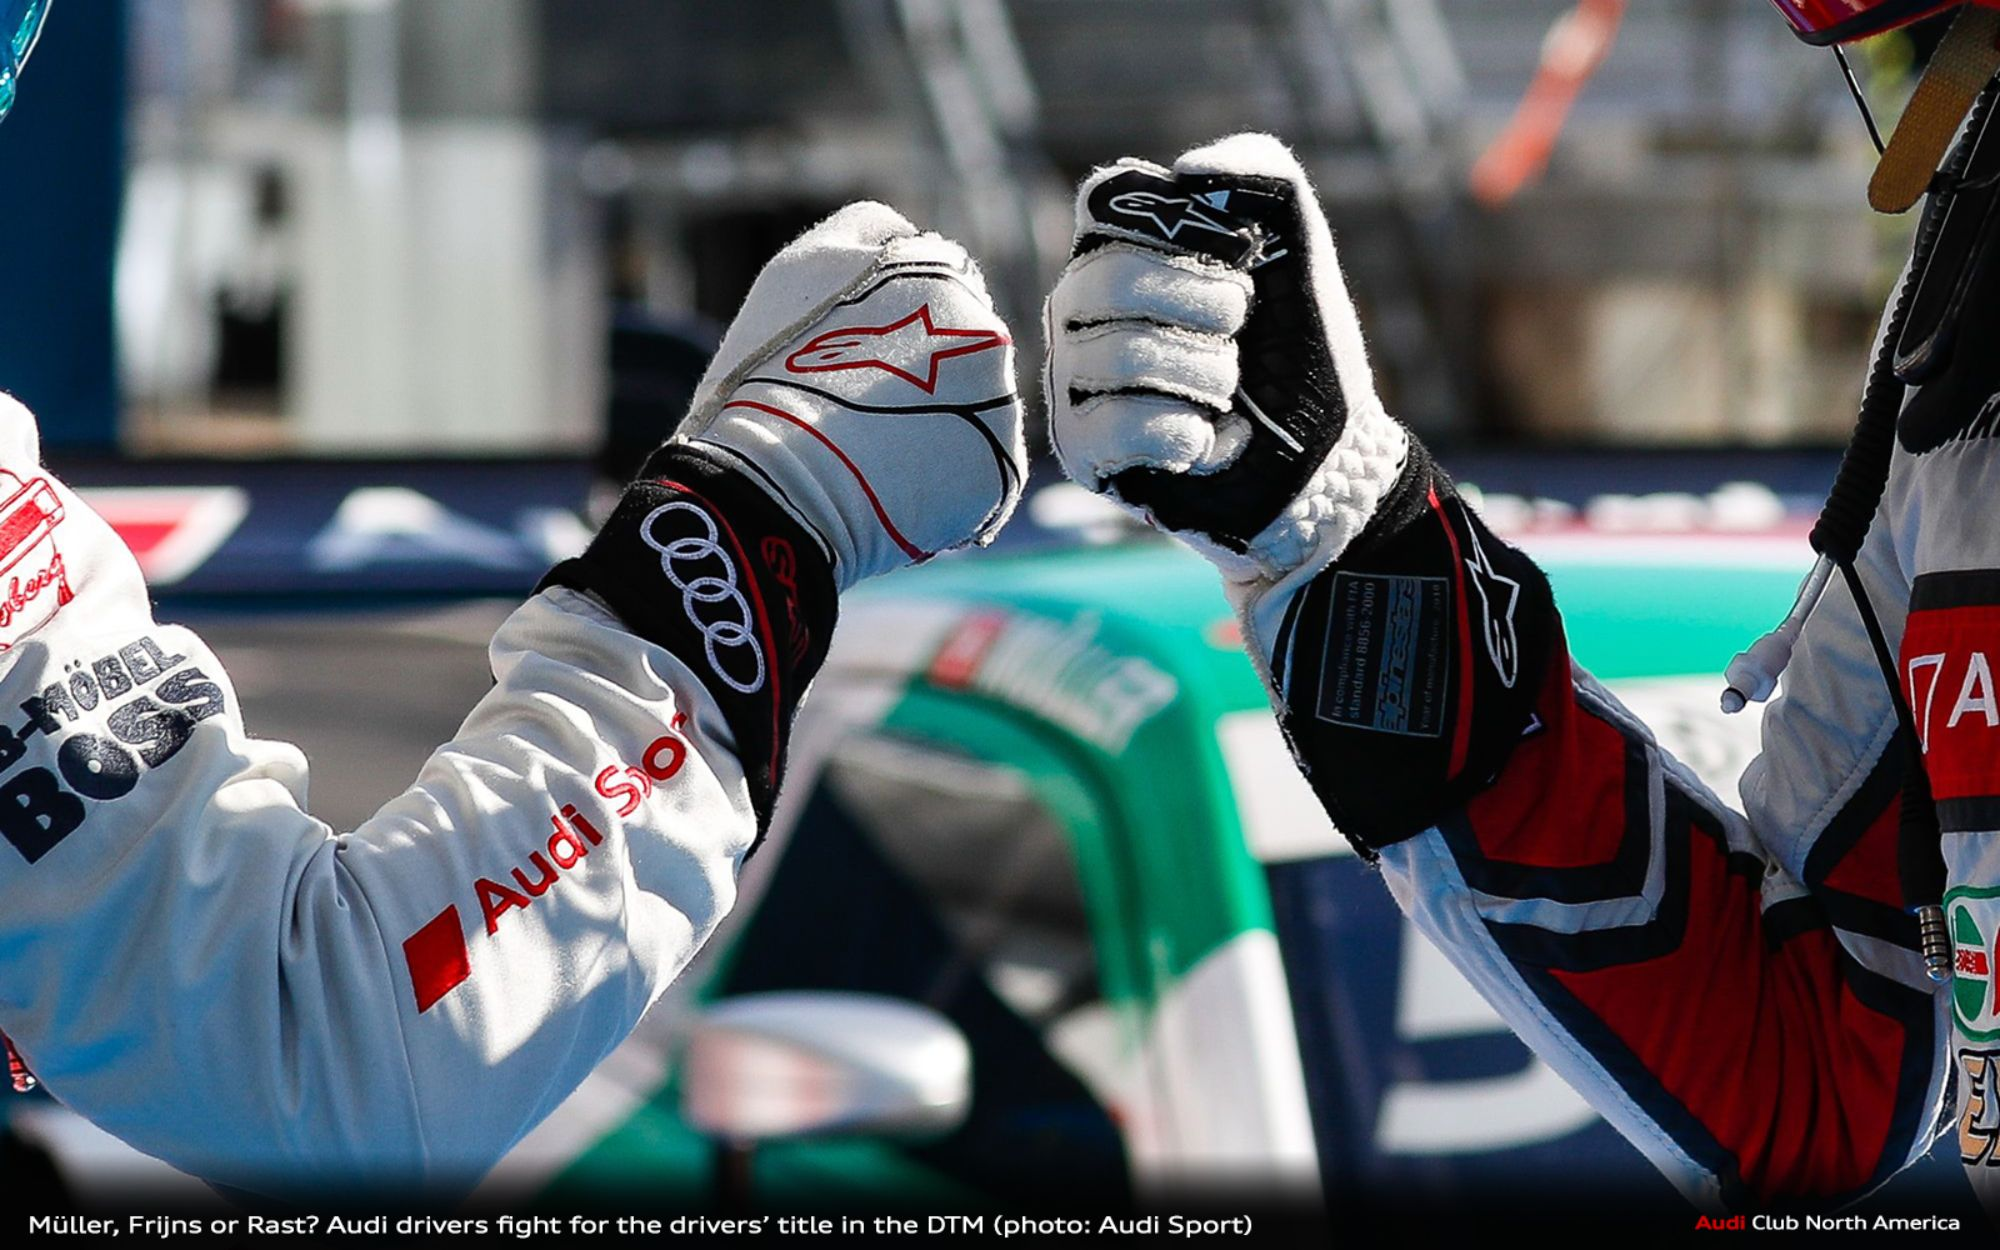 Müller, Frijns or Rast? Audi Drivers Fight for the Drivers' Title in the DTM